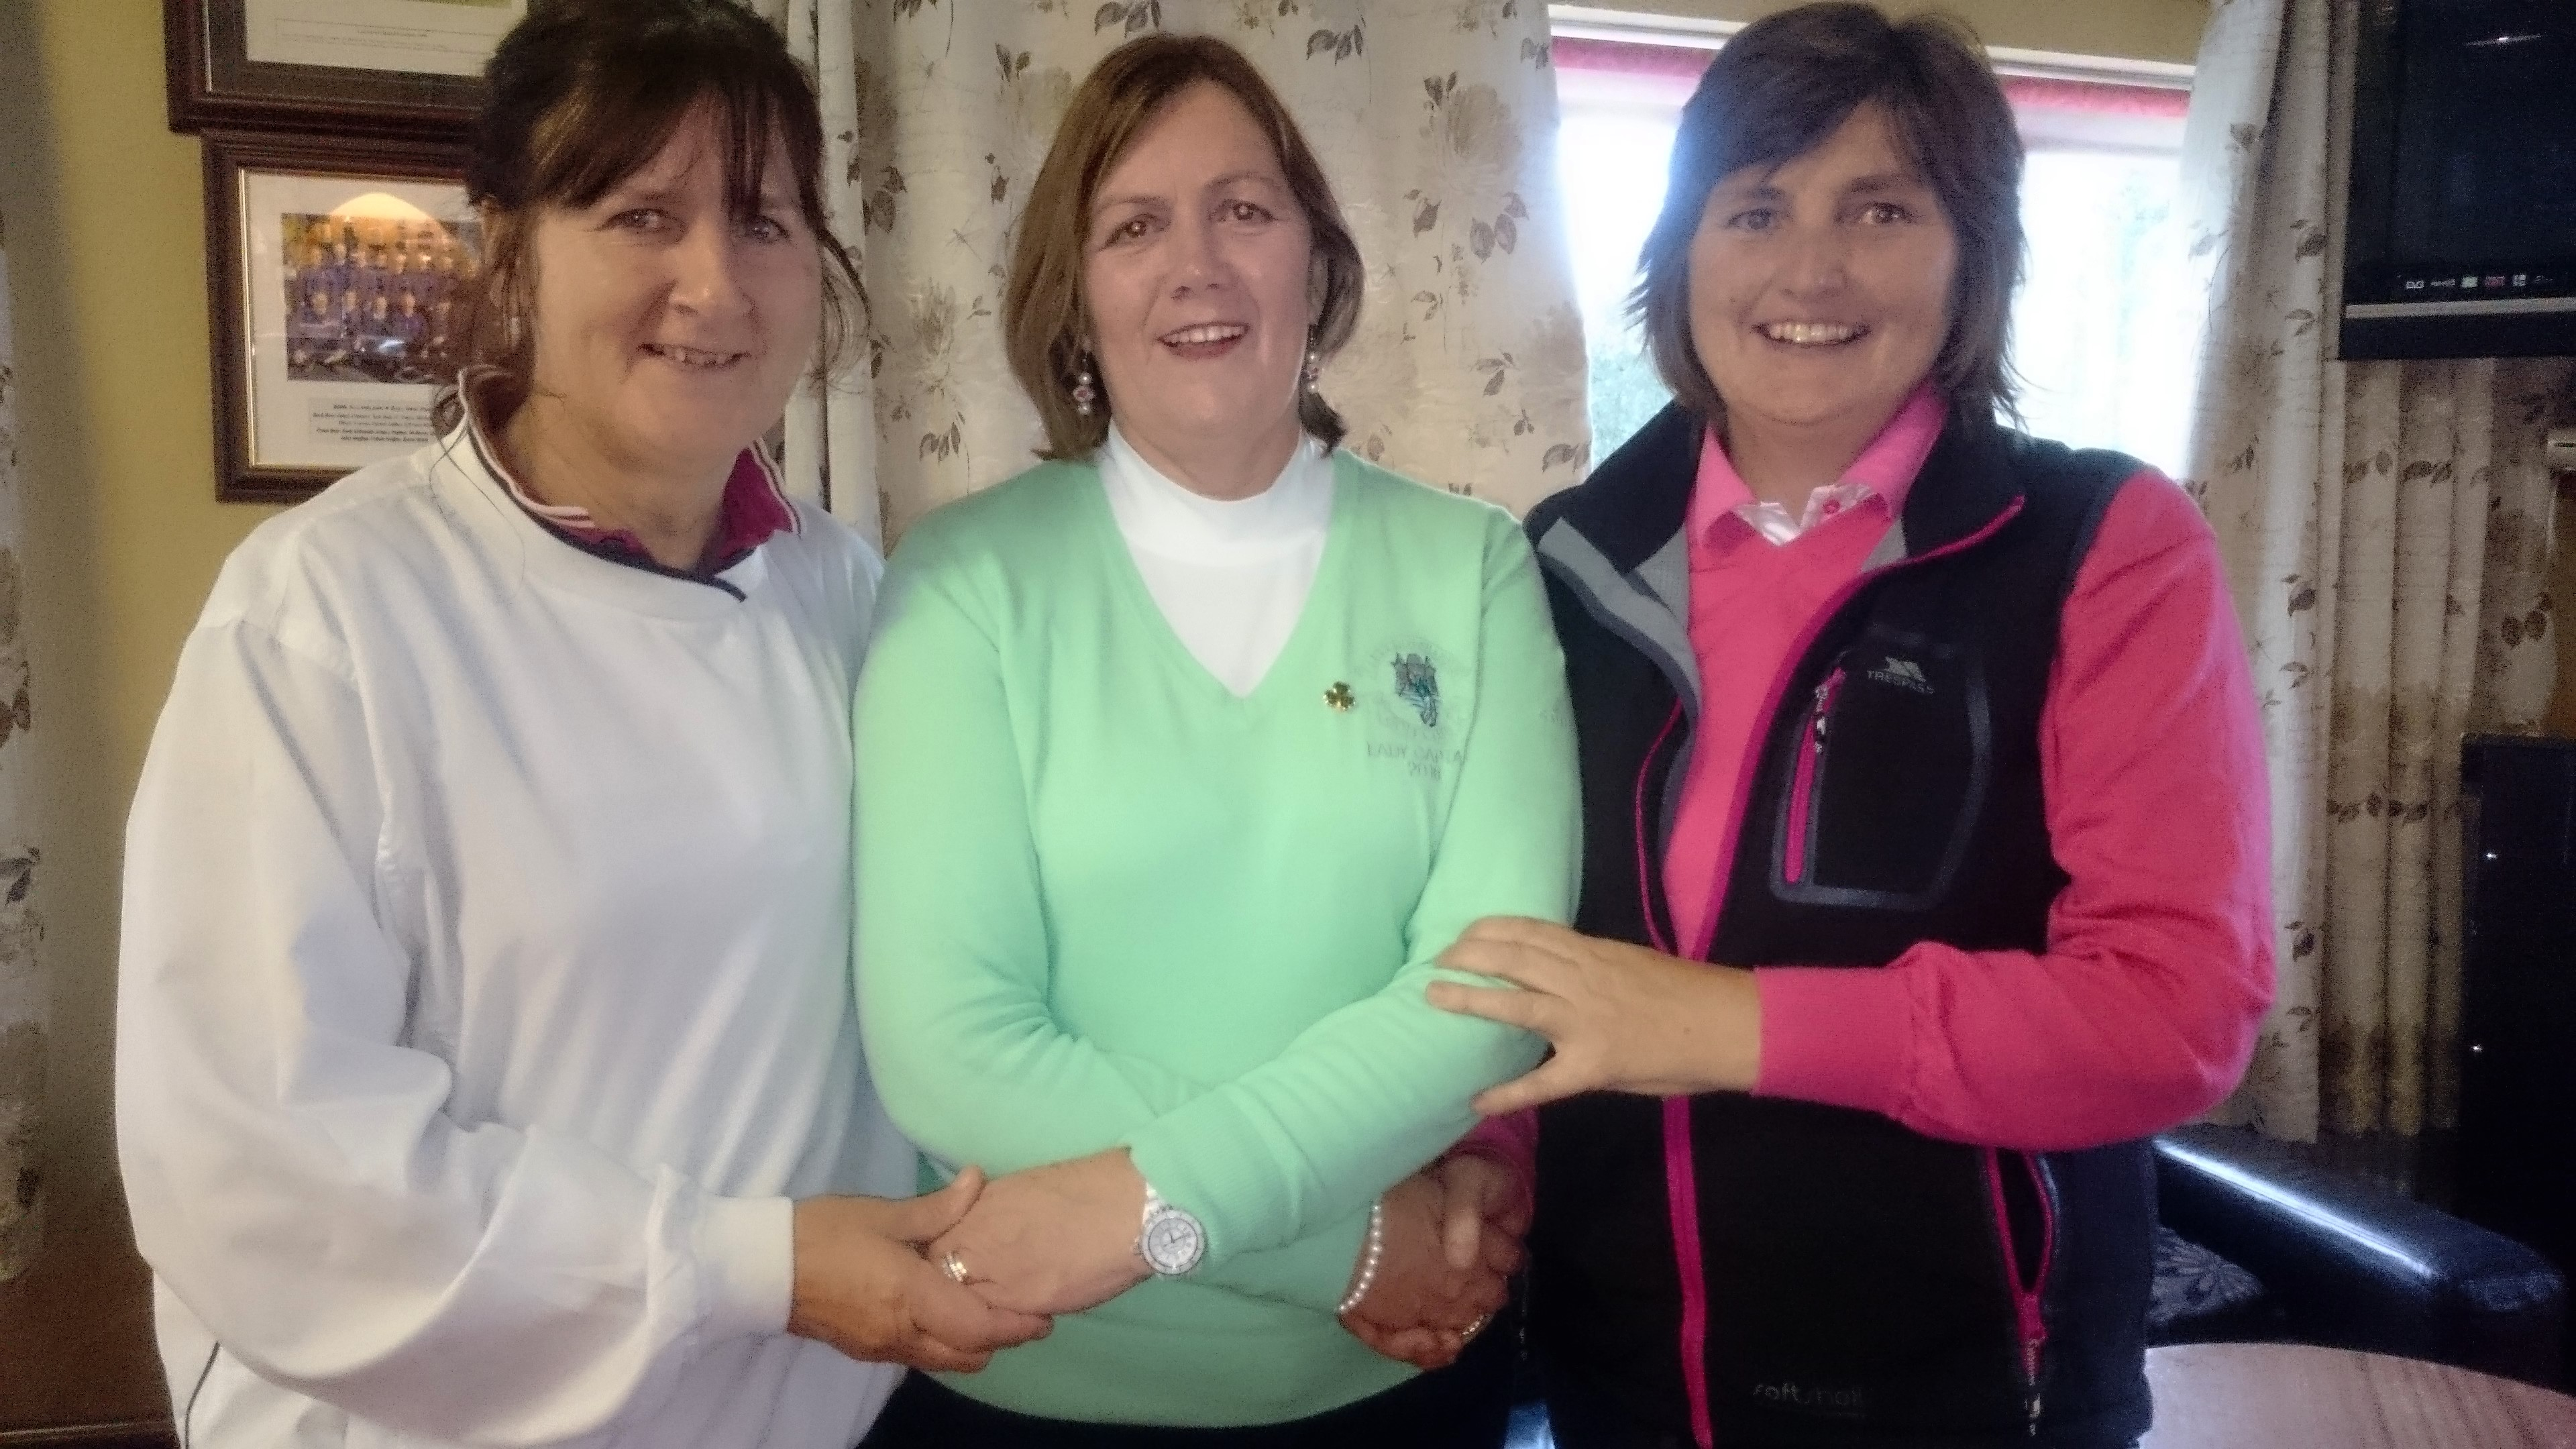 STEWARTS OIL STABLEFORD: PHIL EMMETT(WINNER), LADY CAPTAIN NOLEEN MOFFATT, missing-GER FARRY(GROSS)